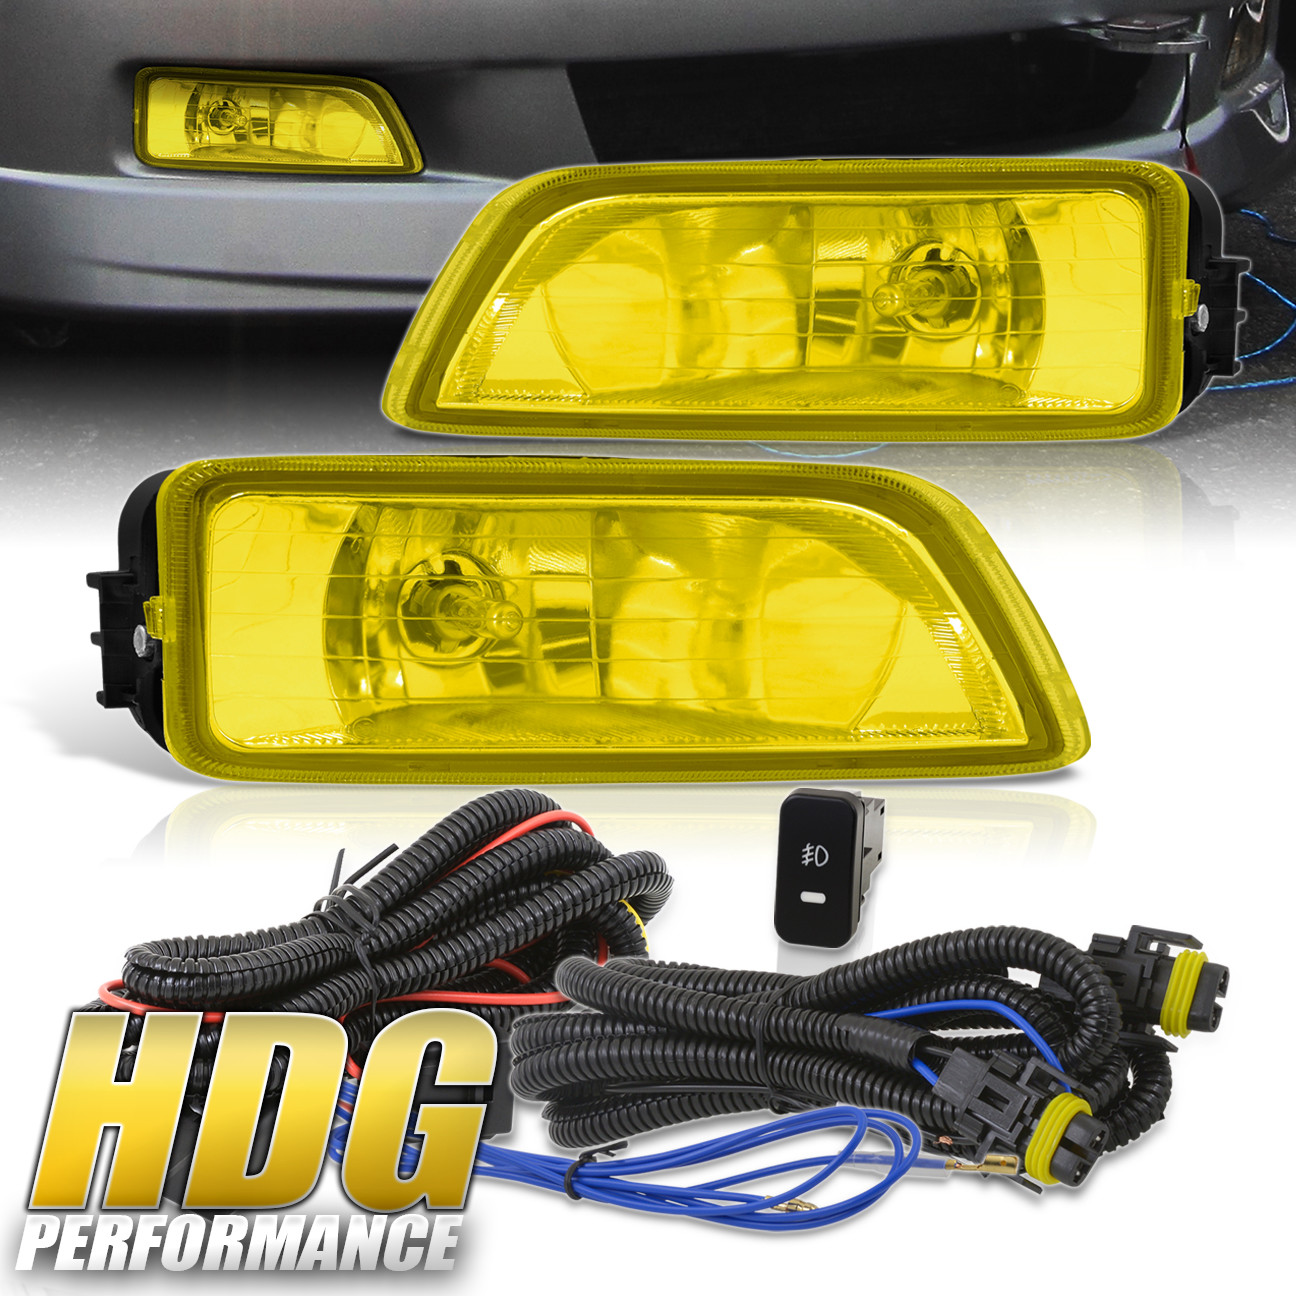 hight resolution of details about for 2004 2008 acura tl 2003 2007 honda accord yellow fog lights w wiring kit